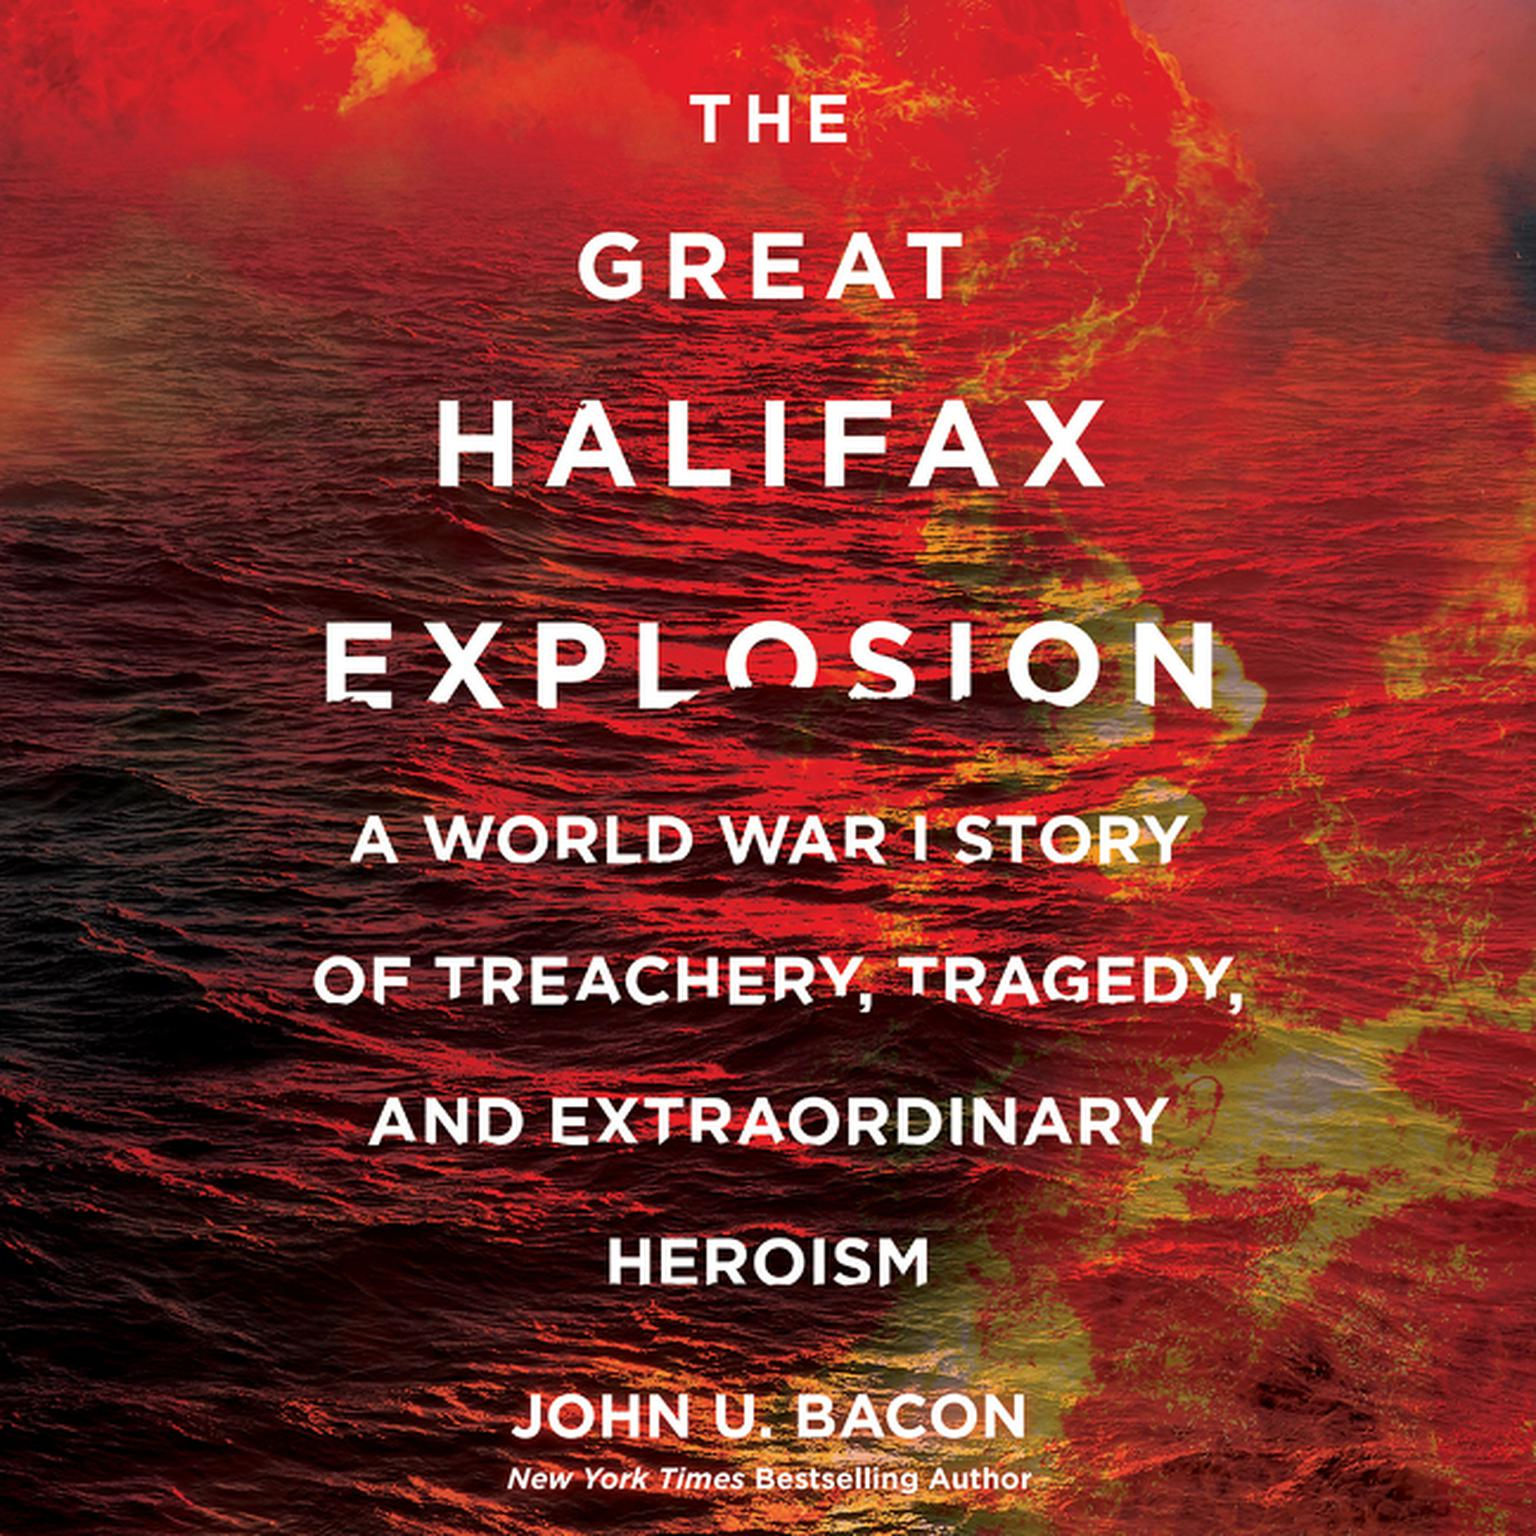 Printable The Great Halifax Explosion: A World War I Story of Treachery, Tragedy, and Extraordinary Heroism Audiobook Cover Art